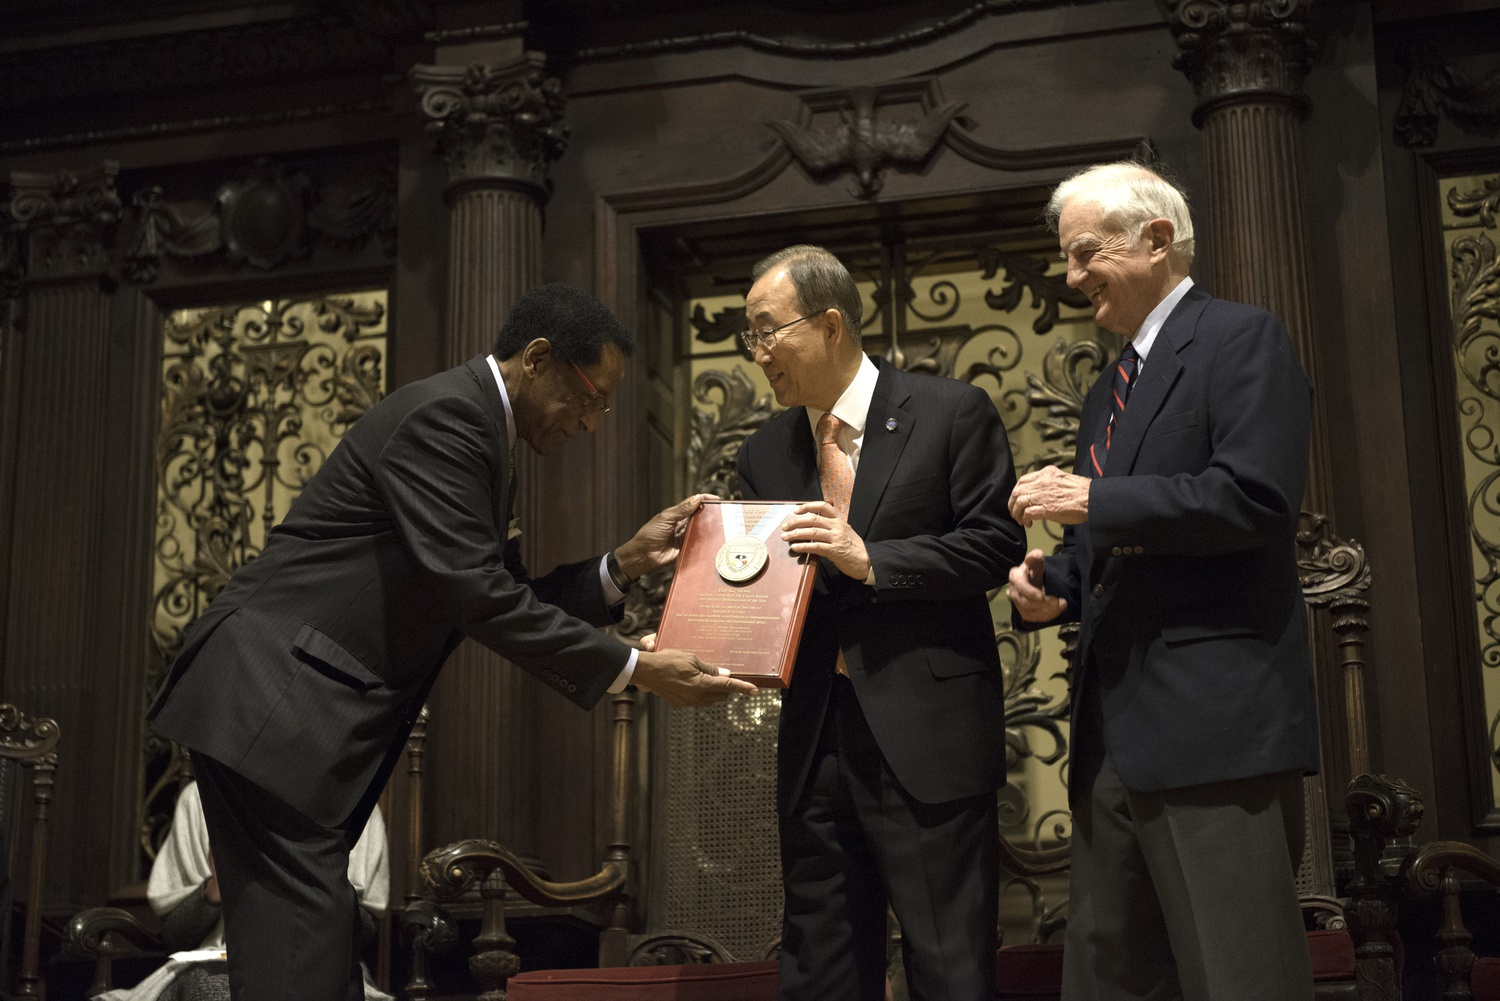 Ban Ki Moon accepts the Harvard Foundation Peter J. Gomes Humanitarian Award as the 2014 Humanitarian of the Year on Tuesday in Memorial Church. Dr. S. Allen Counter Jr., the Director of the Harvard Foundation, and Derek C. Bok presented the award.